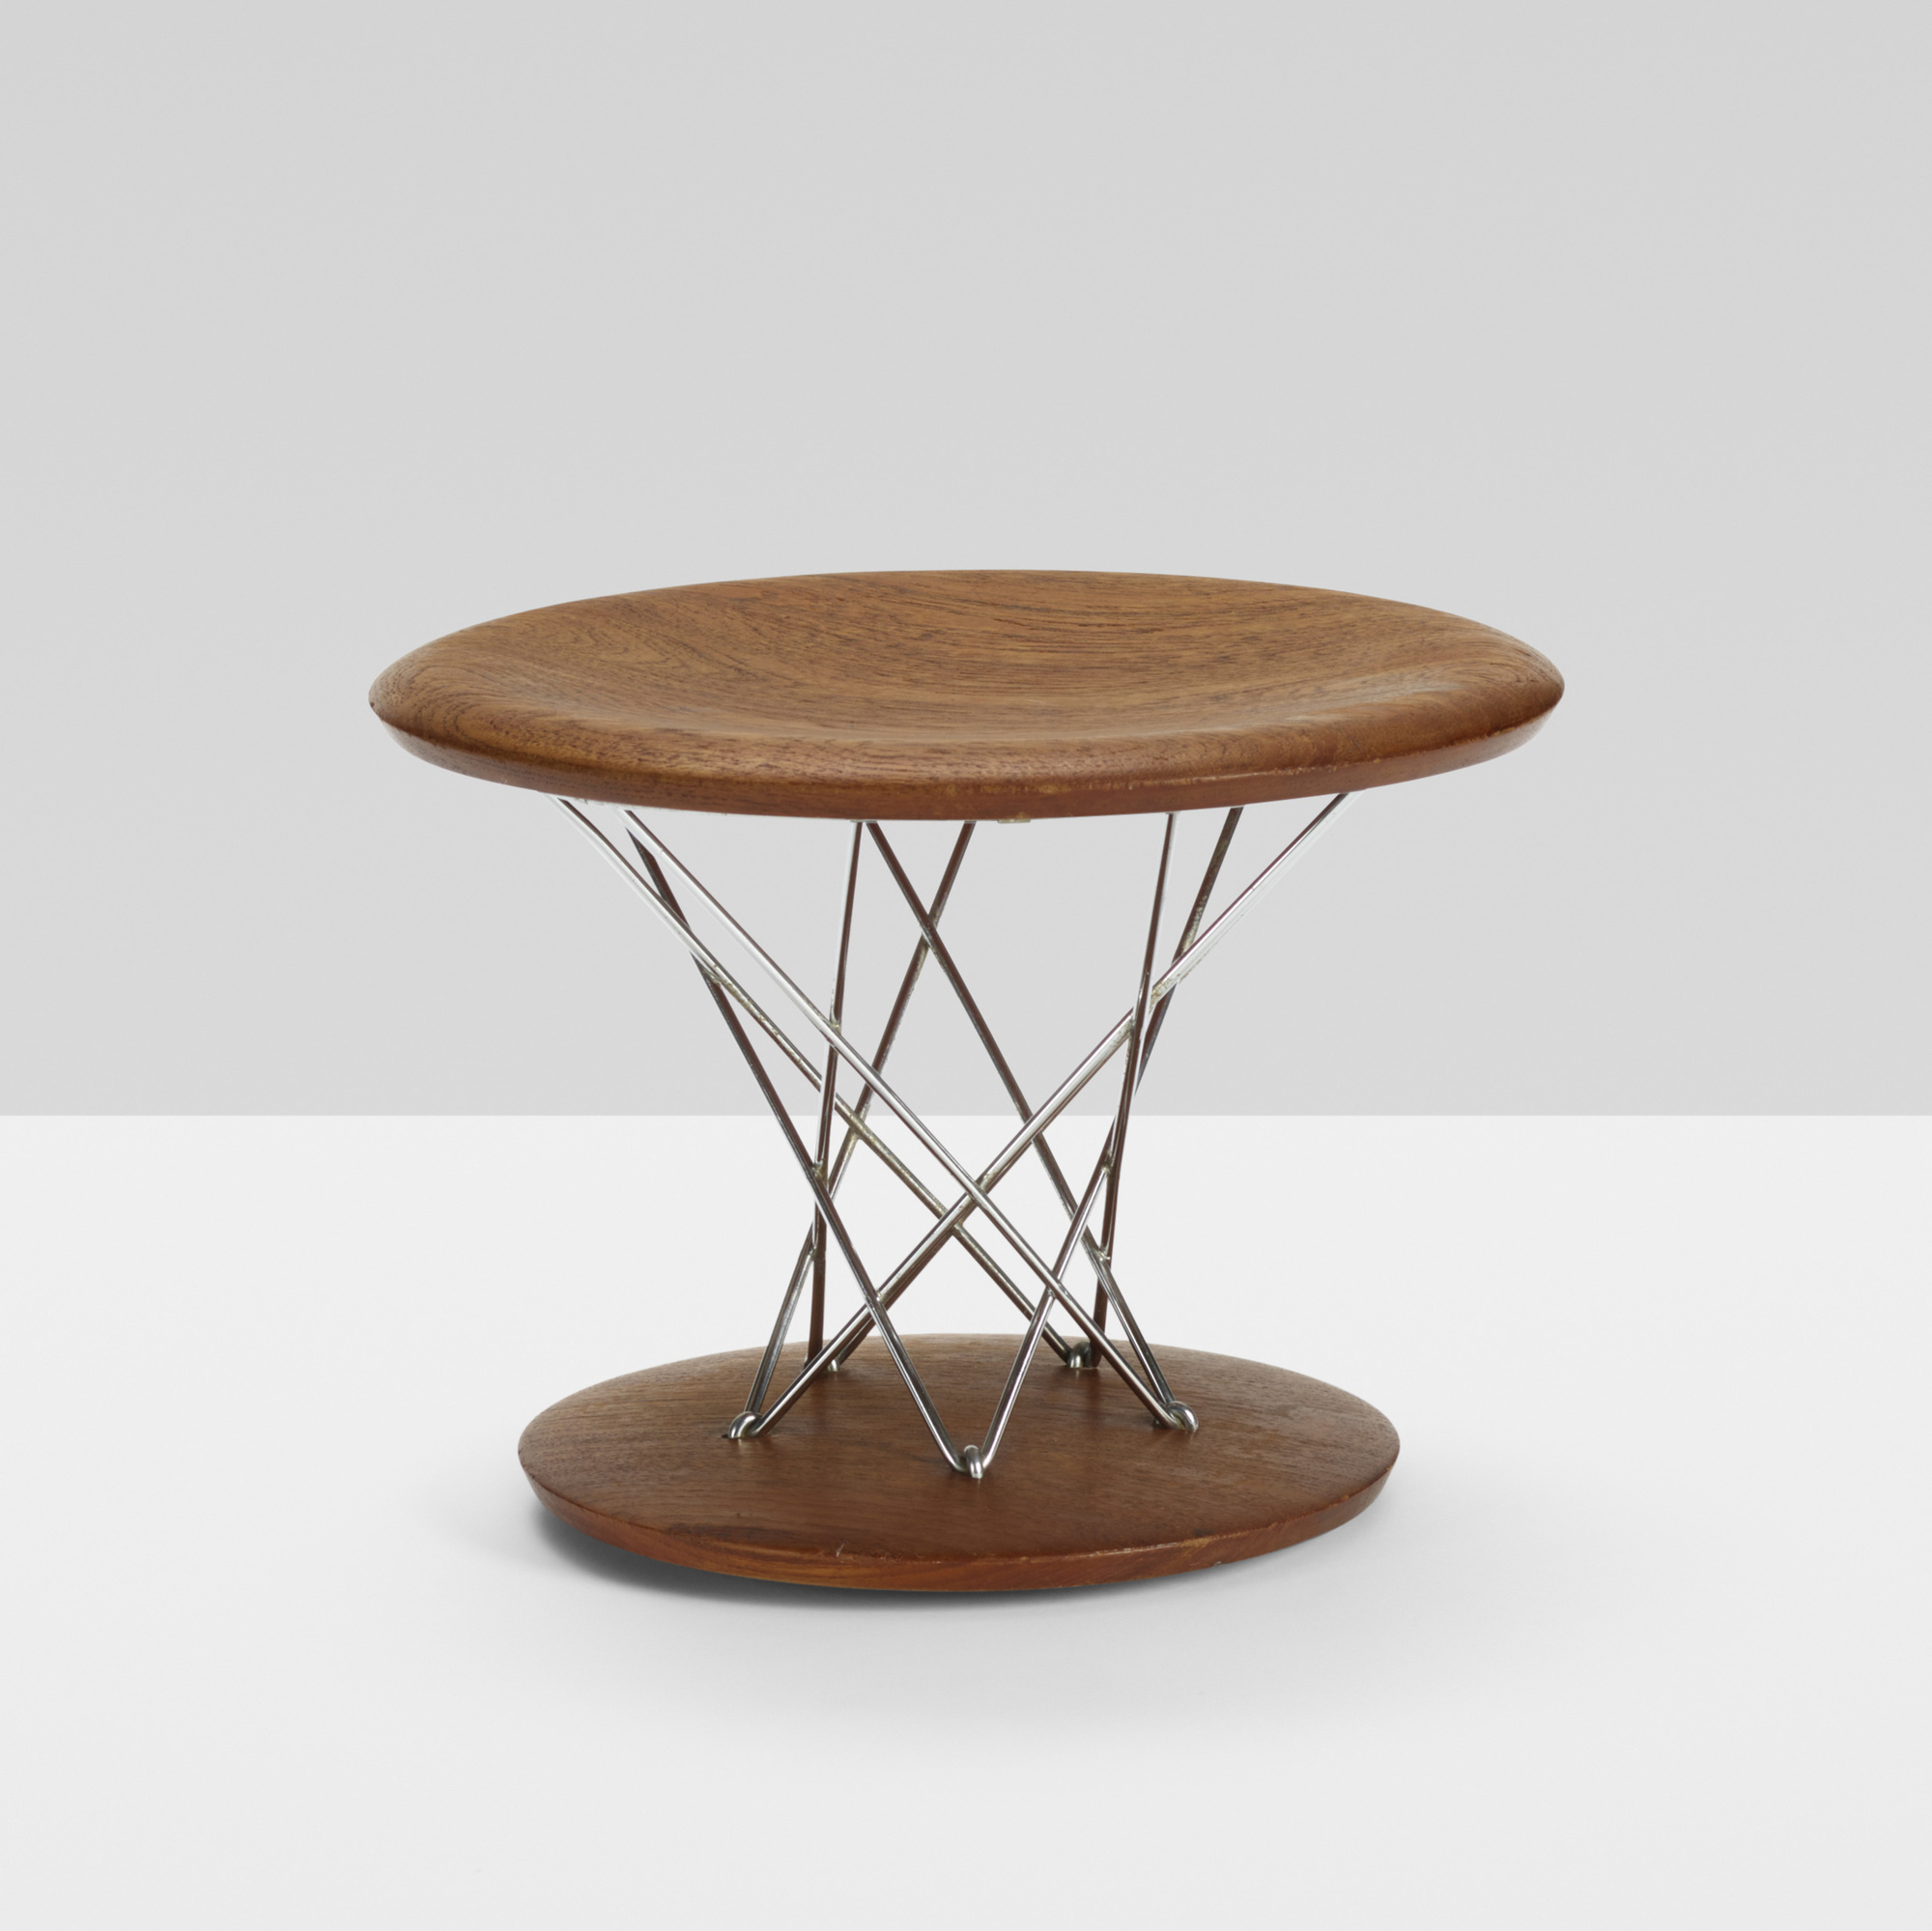 344: Isamu Noguchi / Rocking stool, model 85T (1 of 3)